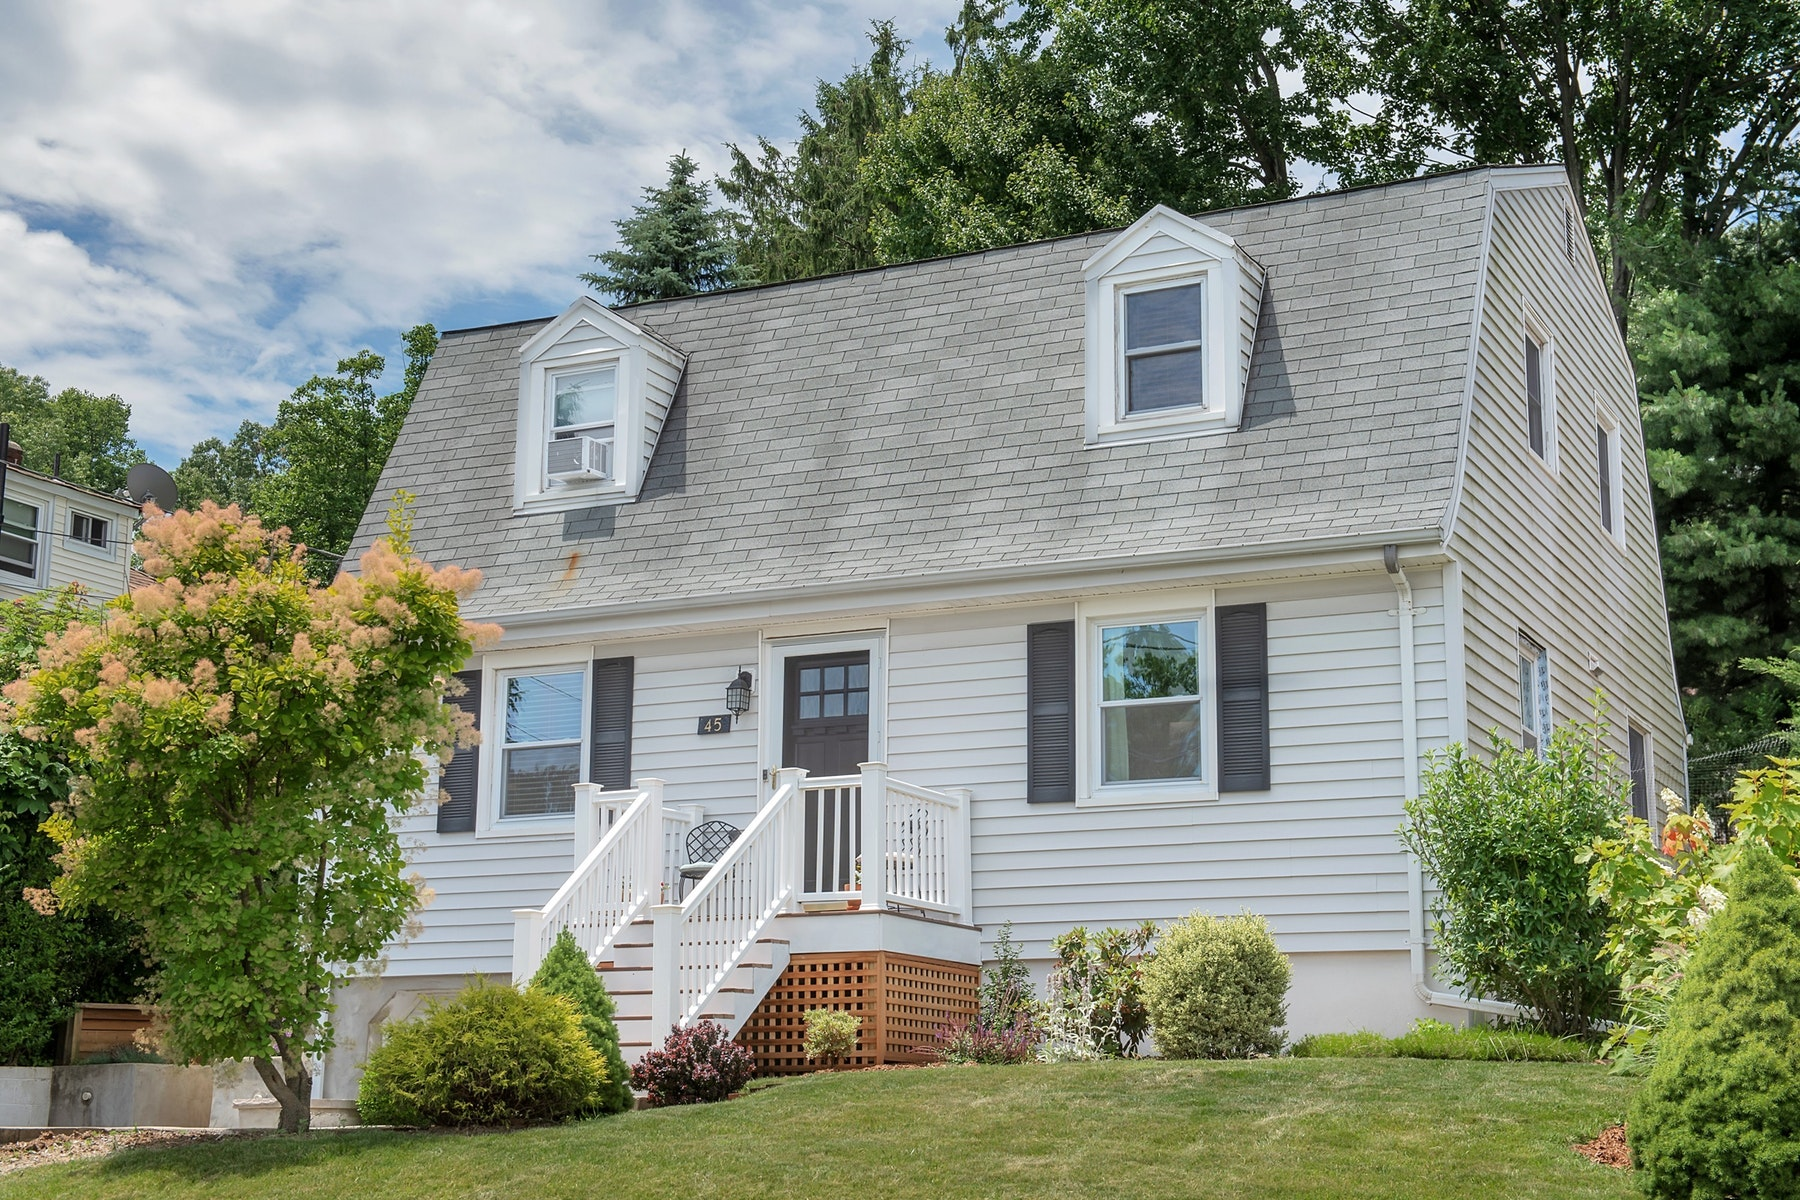 Single Family Homes for Sale at Pristine Gem 45 Garfield Avenue West Orange, New Jersey 07052 United States